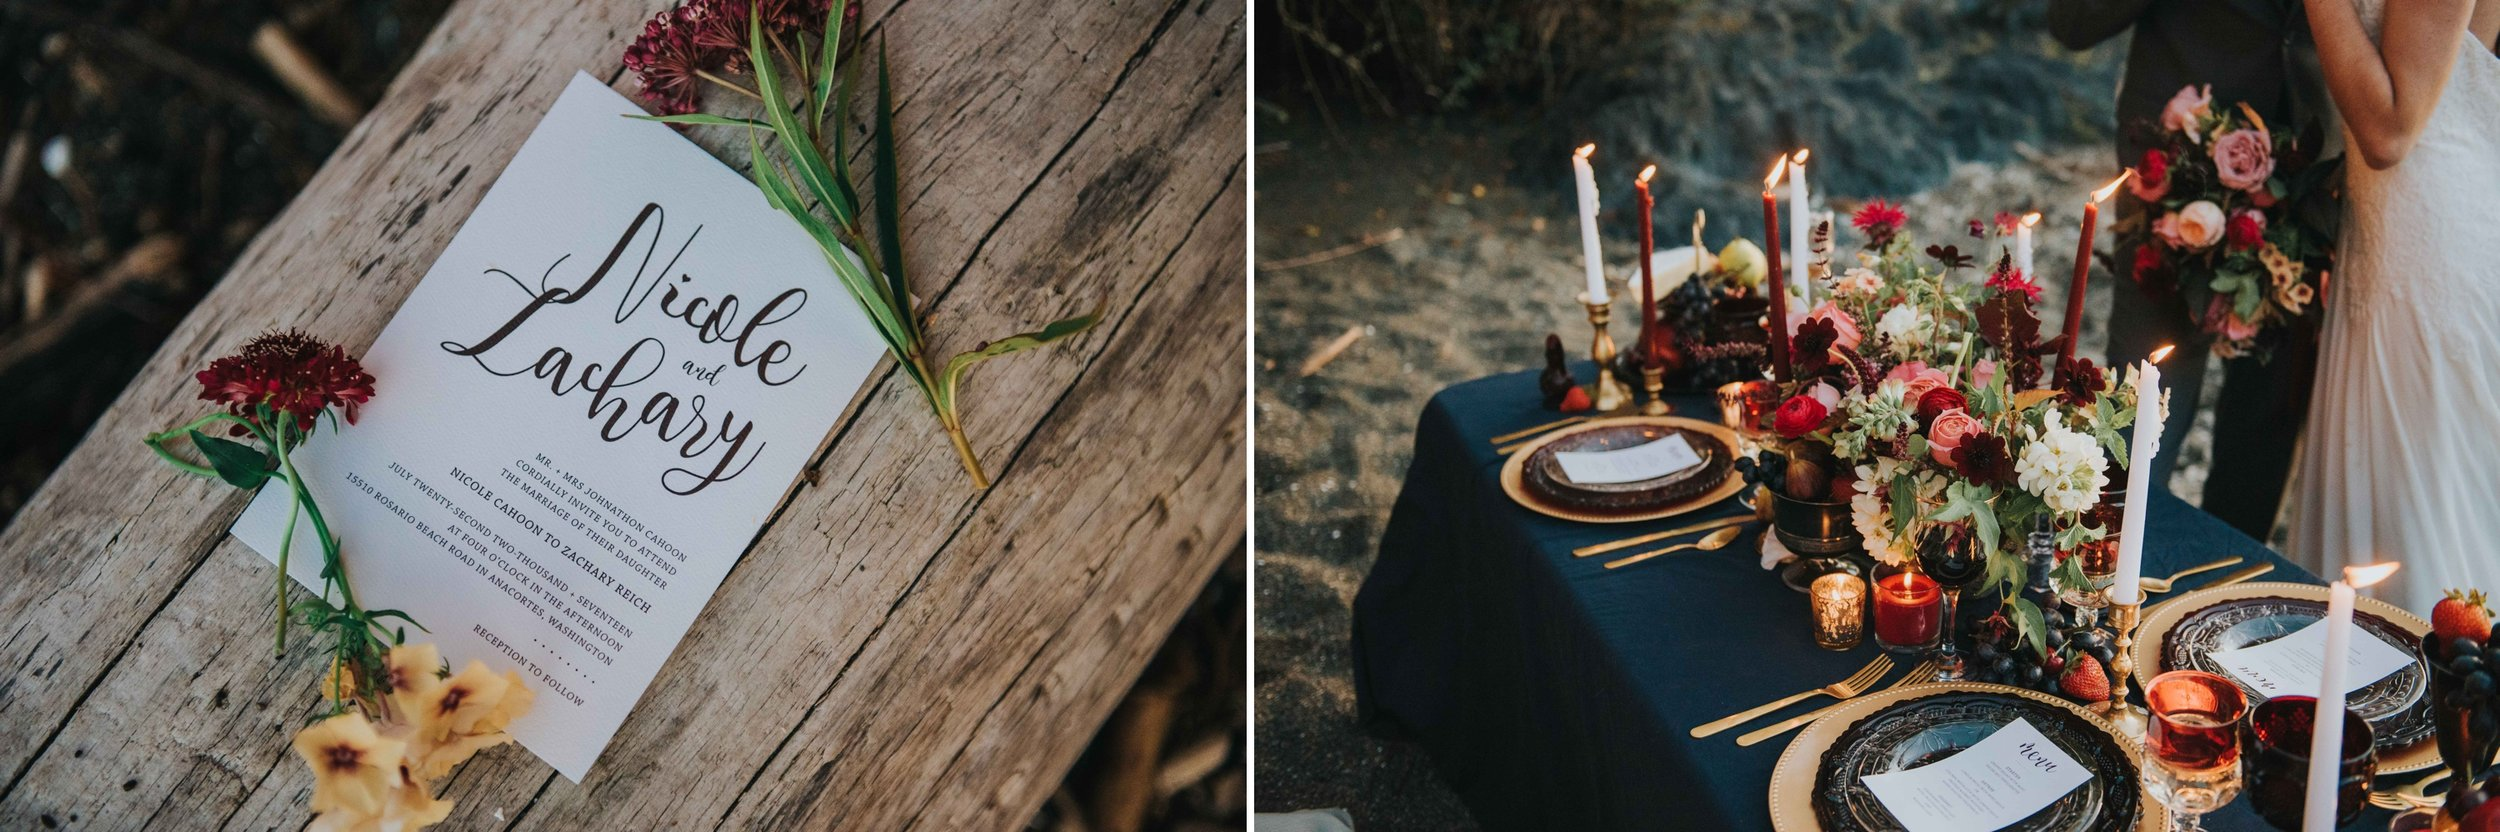 Roman Inspired Table Setting